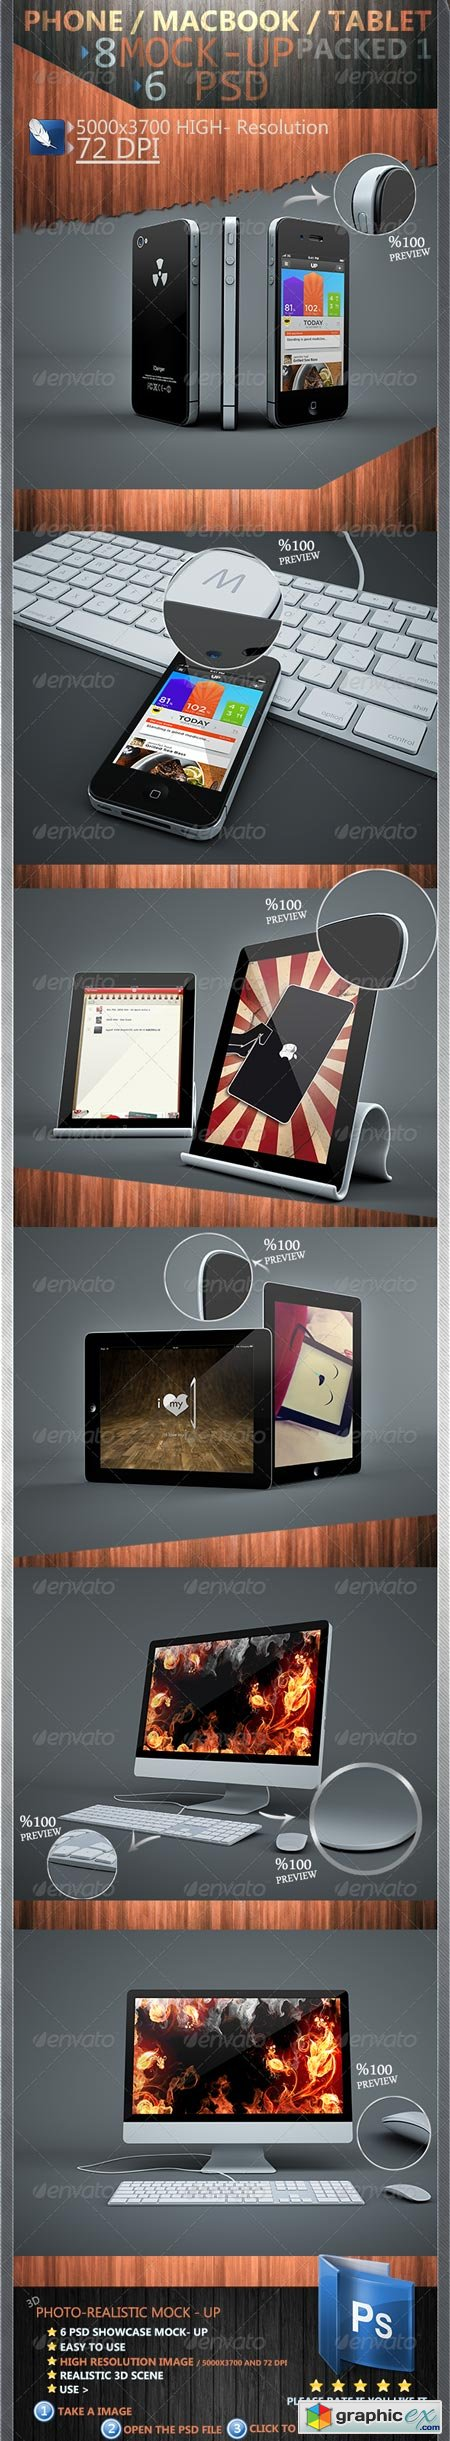 Phone Macbook Tablet Mock-Ups Packed 1 3531389